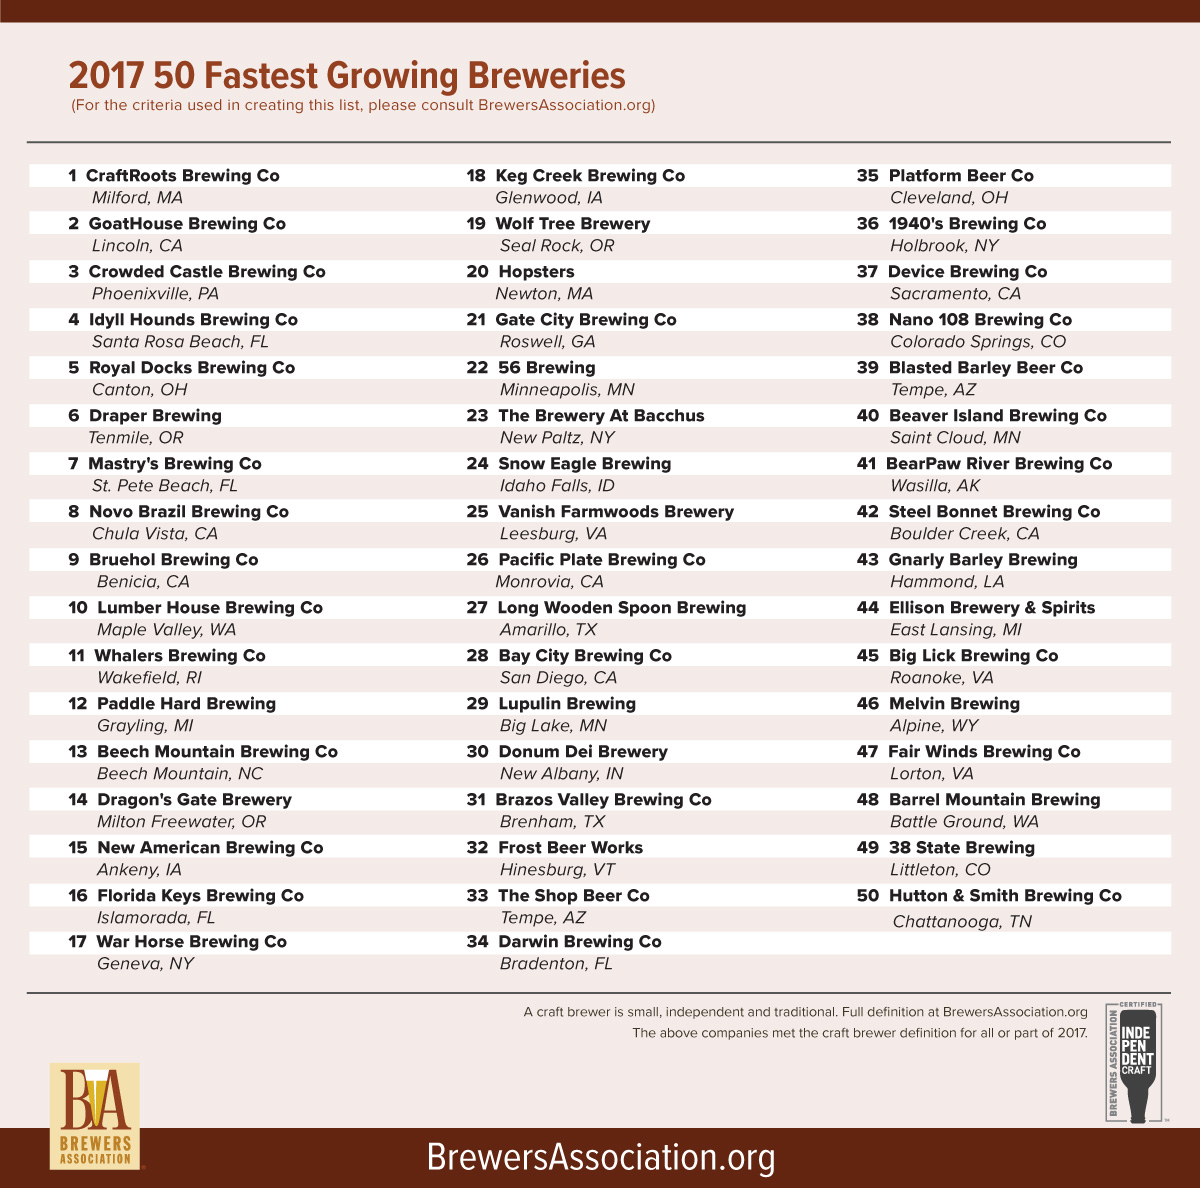 2017 50 Fastest Growing Breweries list